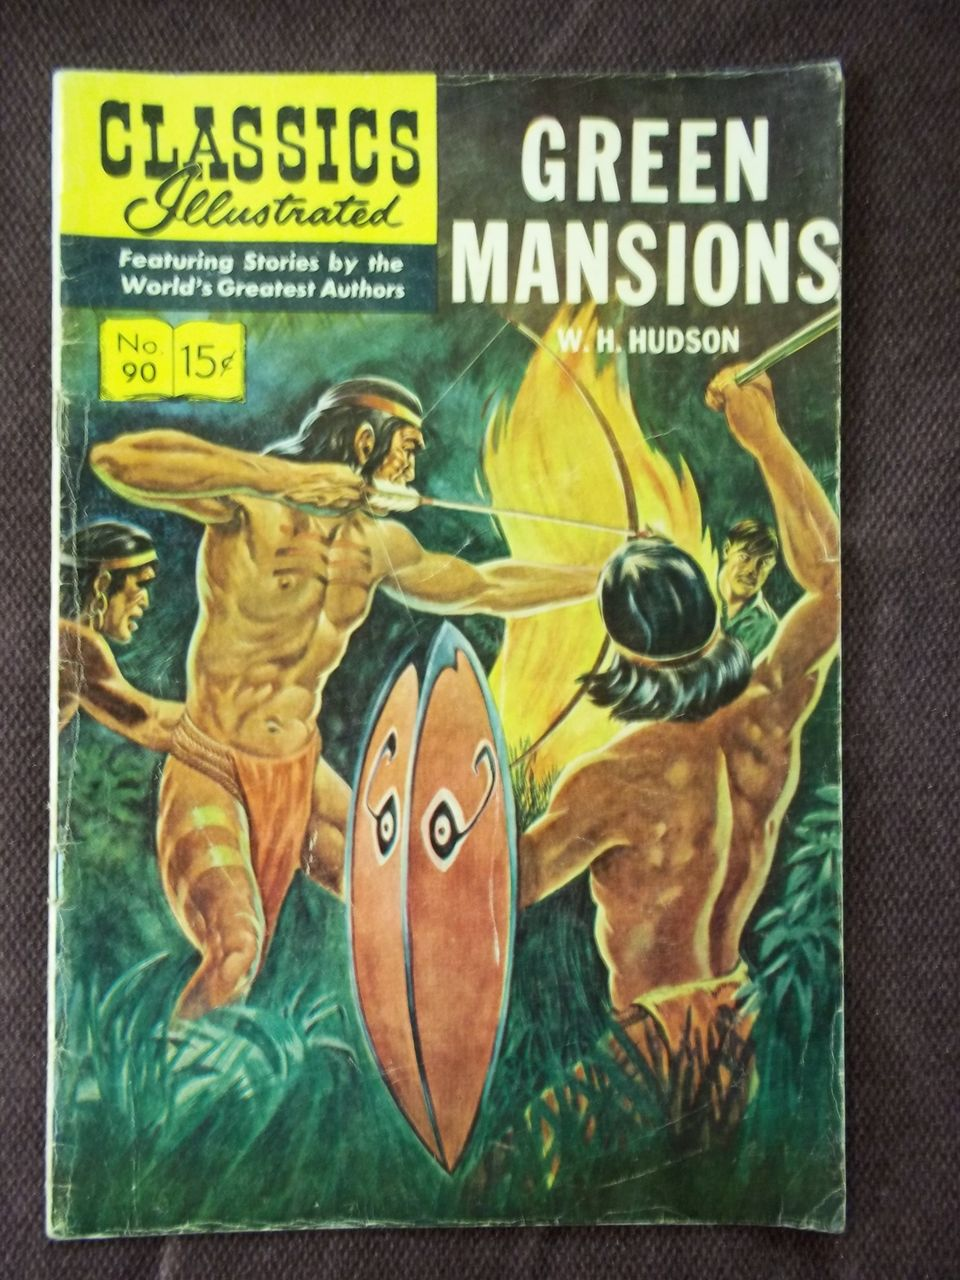 Classics Illustrated No. 90 Green Mansions